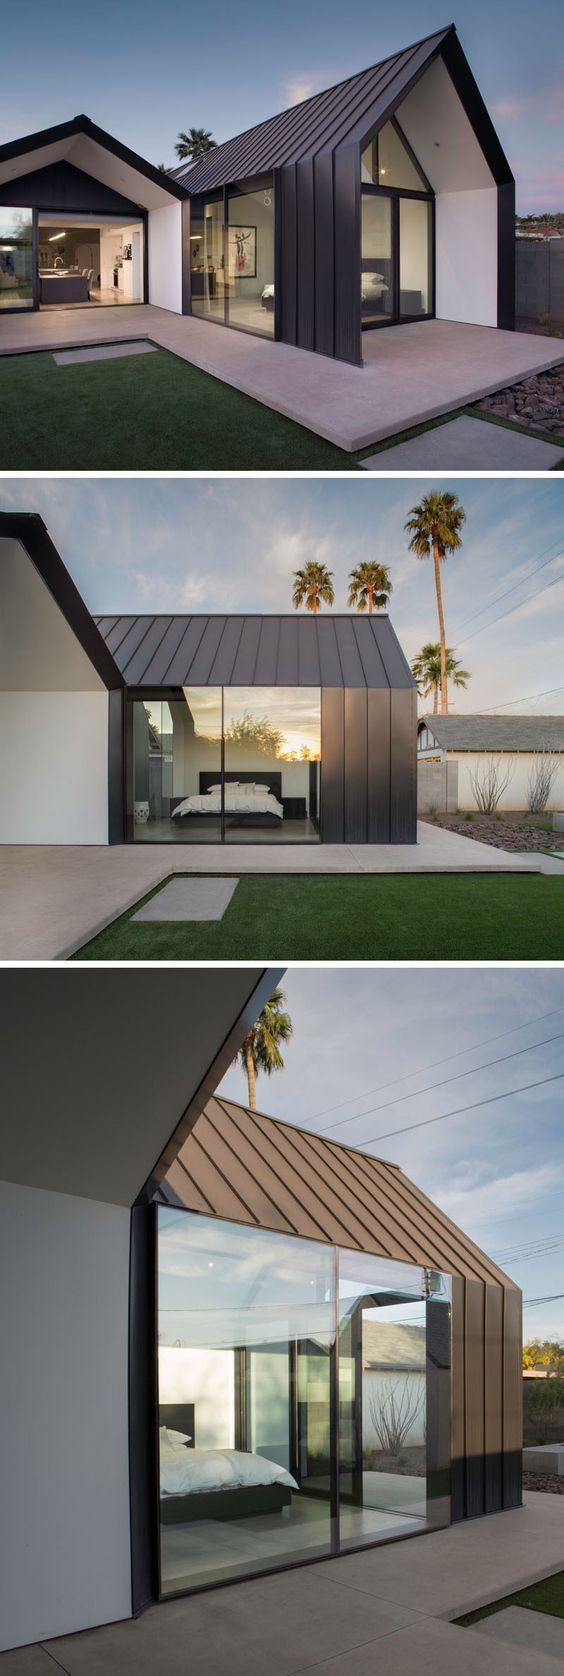 500 best Modern Exteriors images on Pinterest | Exterior homes ...